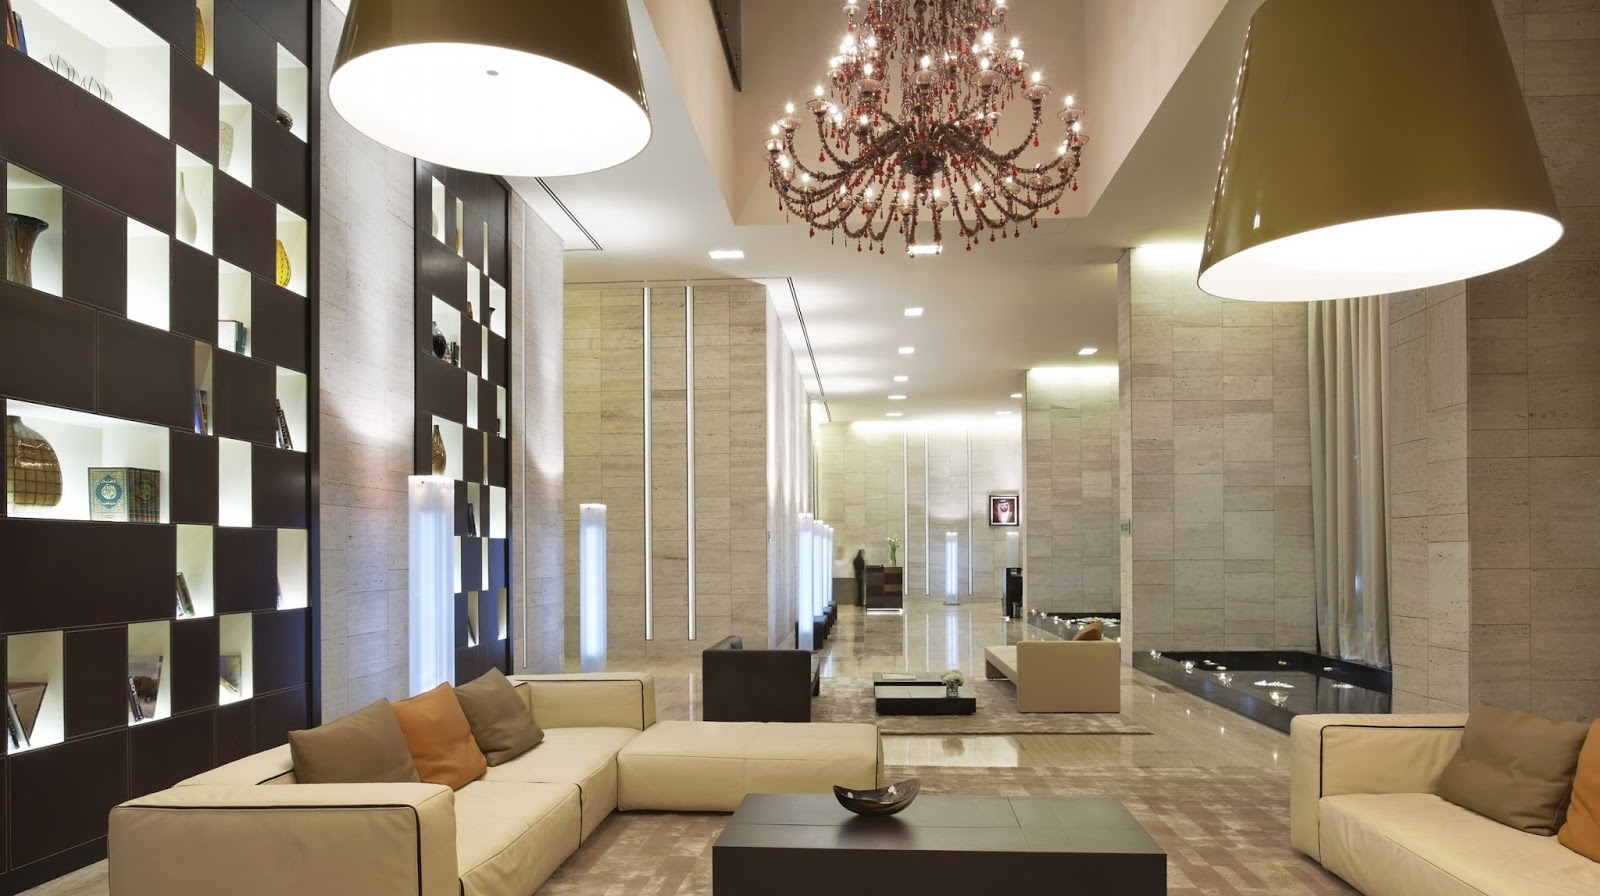 Best interior design companies and interior designers in dubai for Design your interior